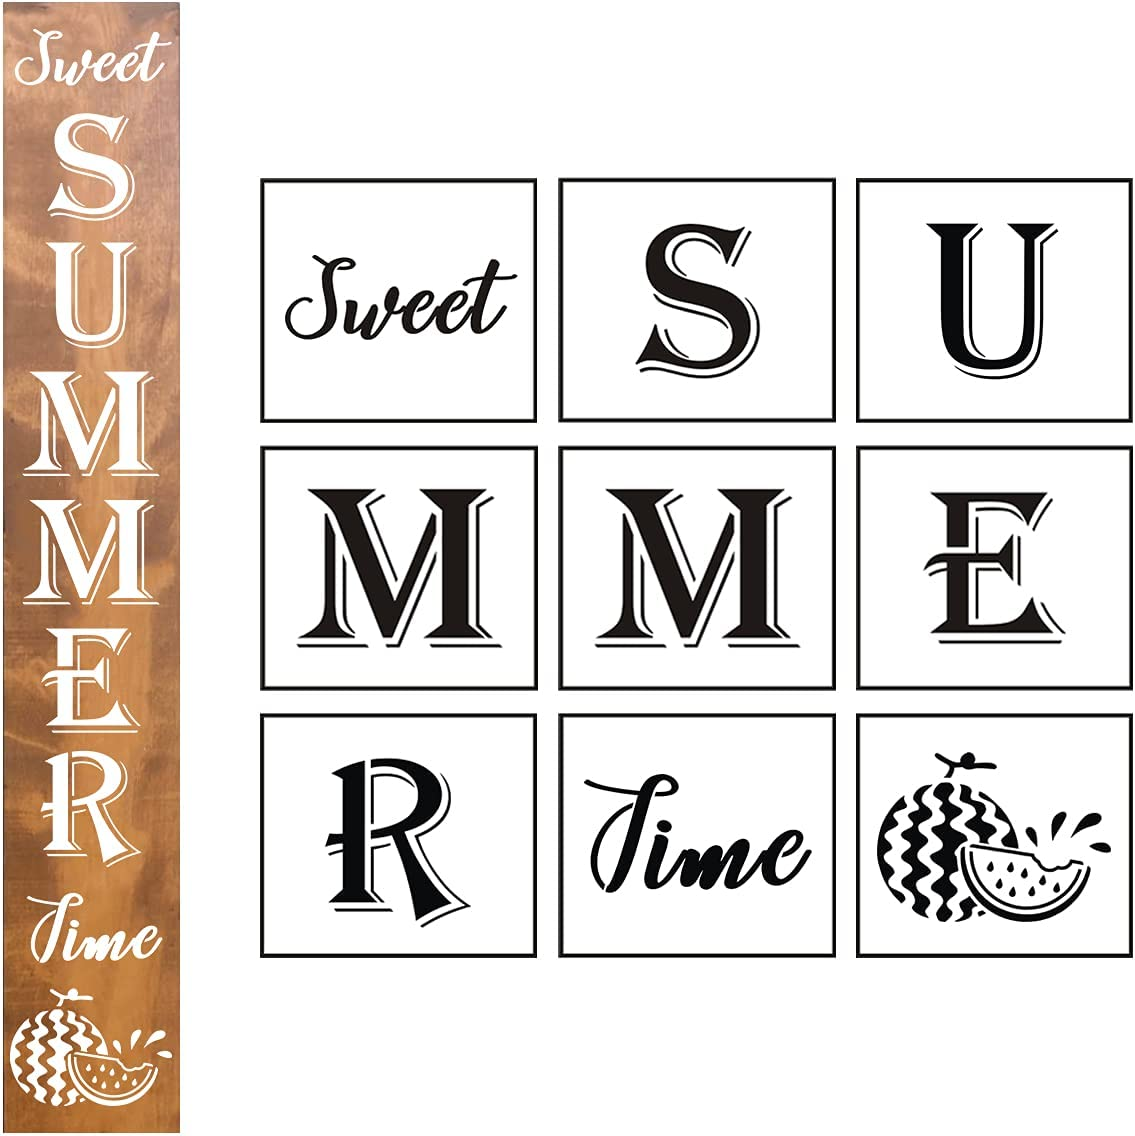 Large Sweet Summer Time Stencil - 9 Pack Vertical Sweet Summer Time Sign Stencils Templates with Watermelon for Painting on Wood, Reusable Letter Stencils for Front Door Porch Wood Signs